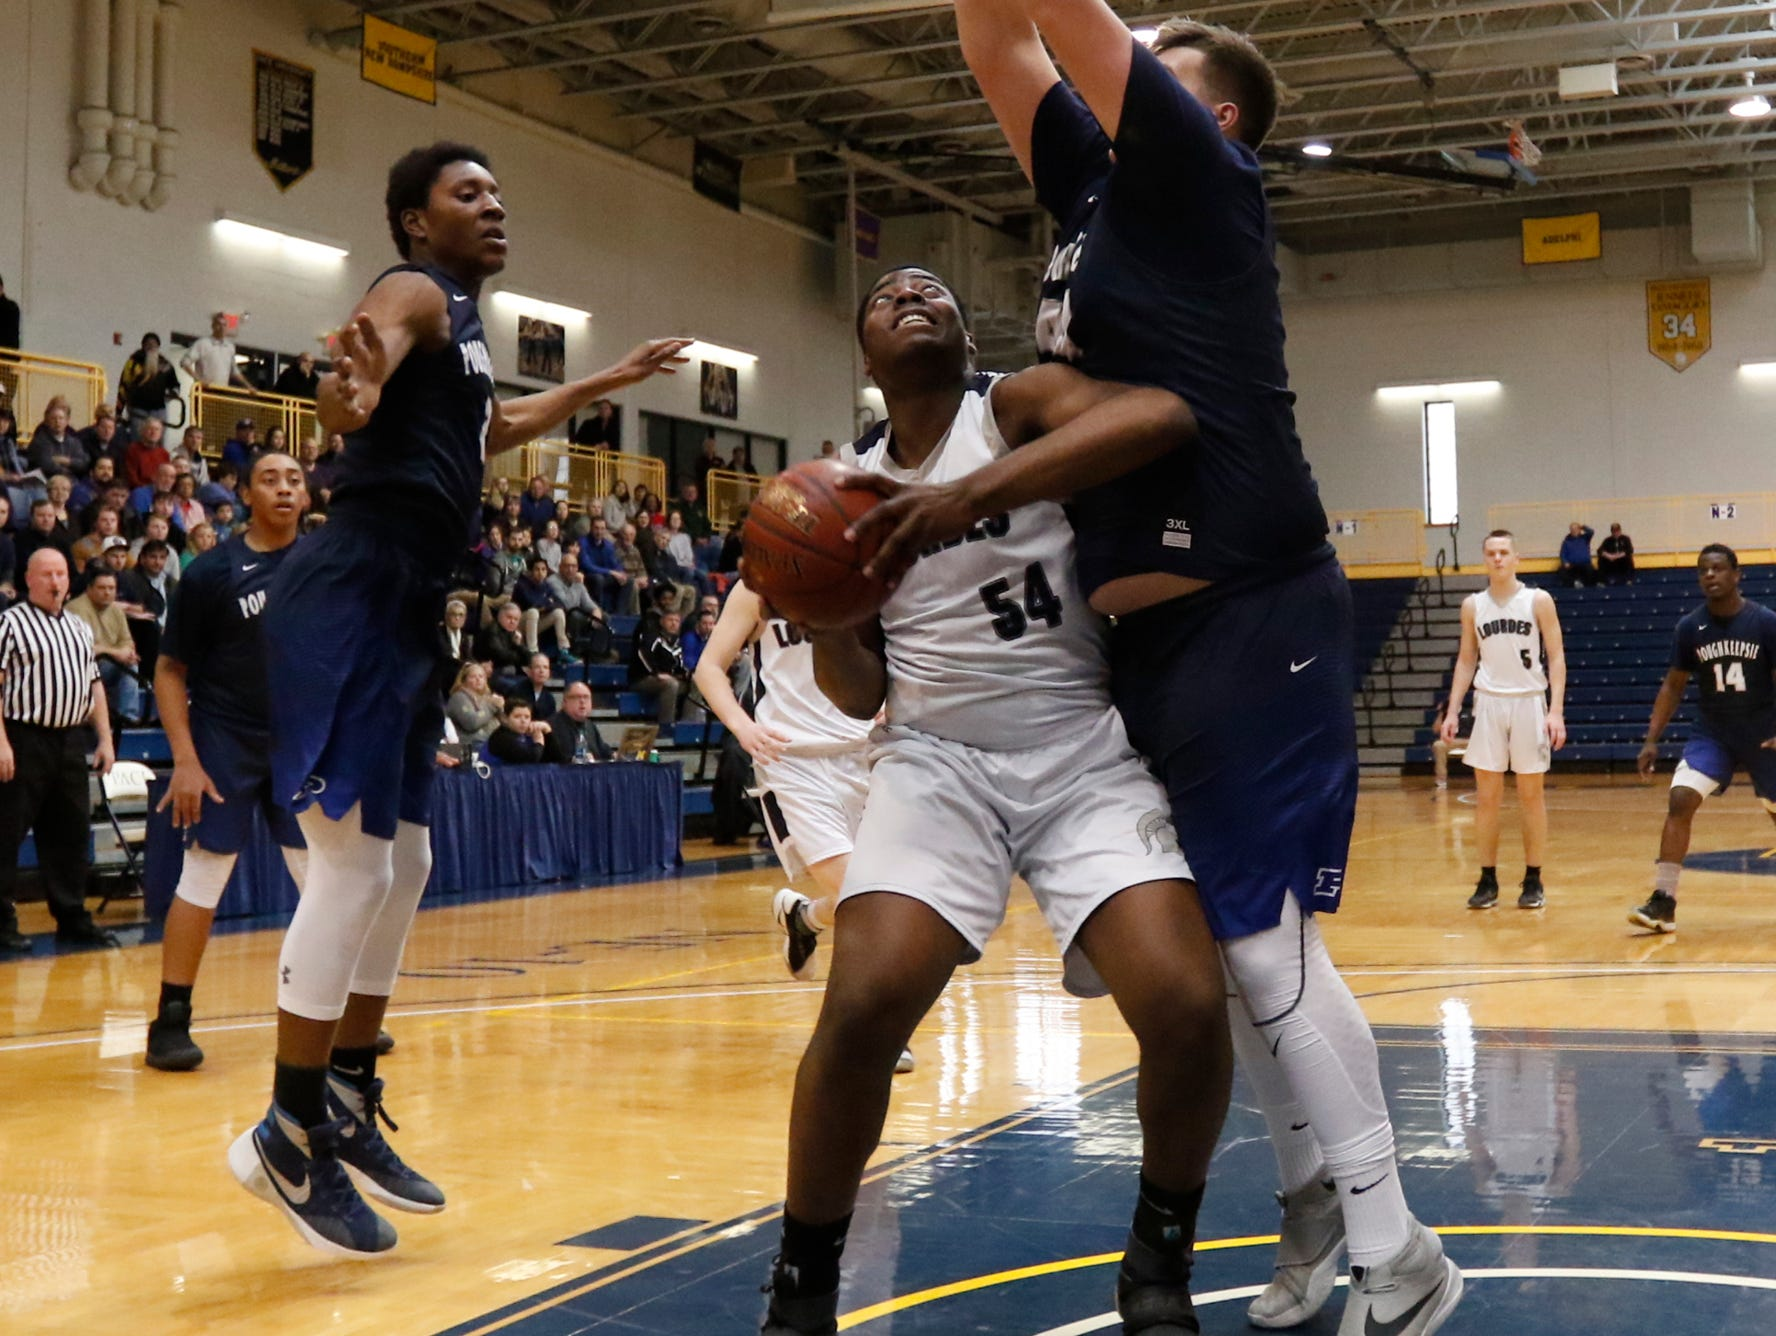 Our Lady of Lourdes High School's James Anozie looks for space as Poughkeepsie's Cory Simmons defends during the Class A regional finals at Pace University in Pleasantville on March 11.